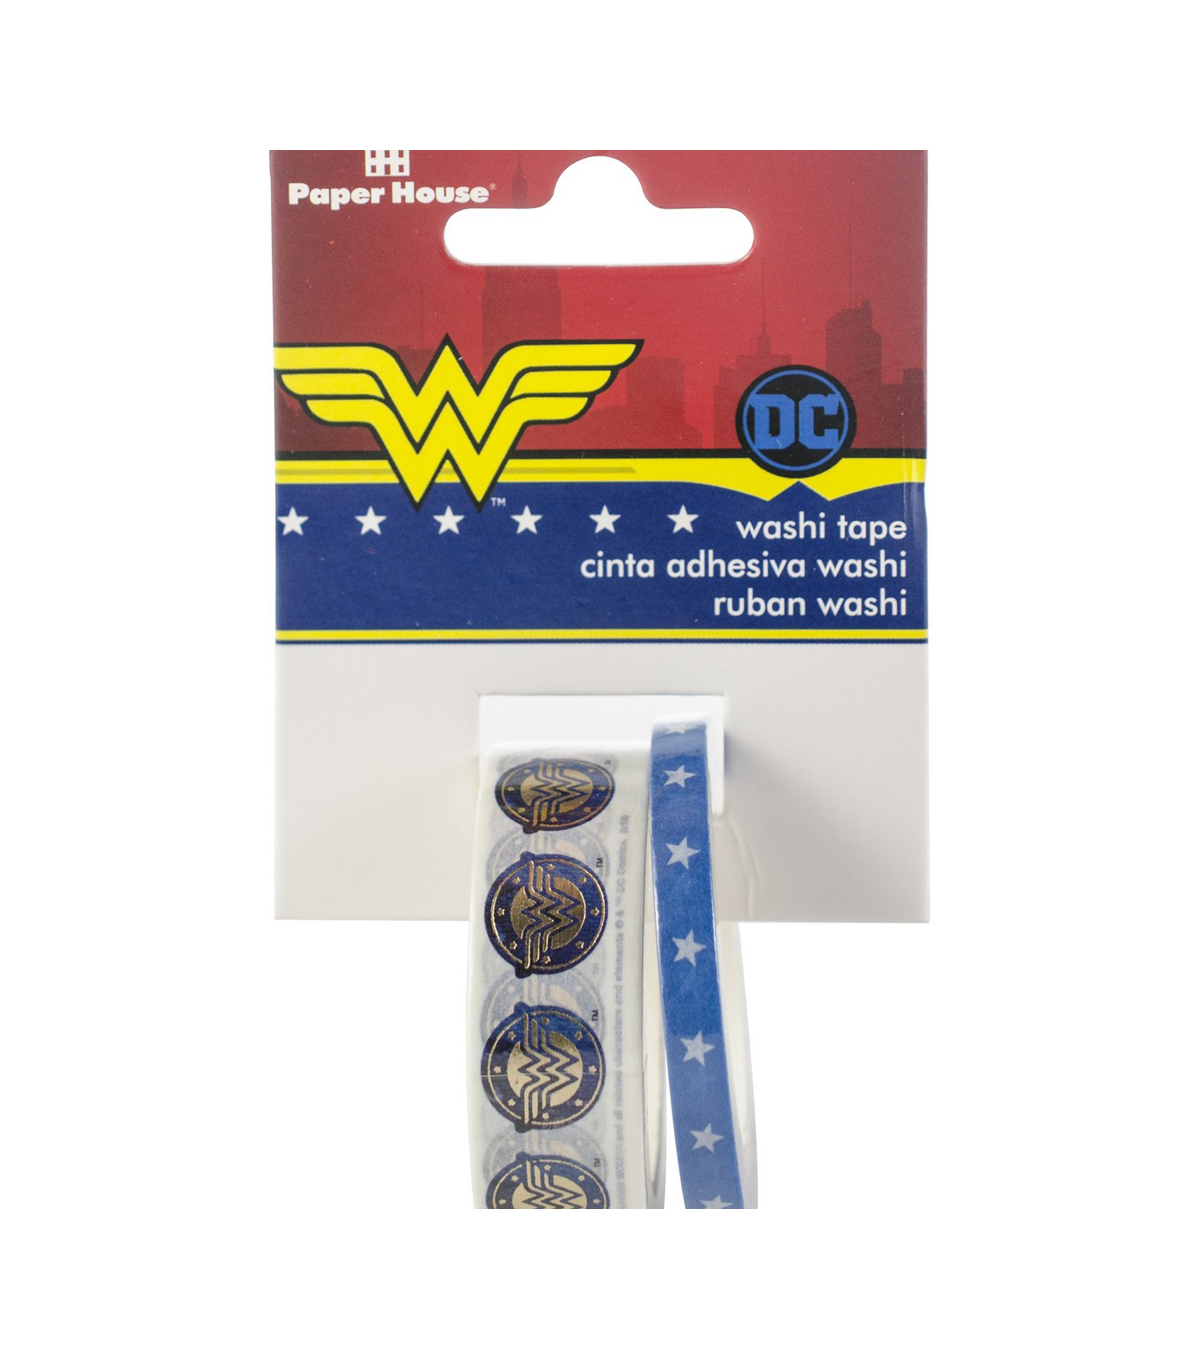 Paper House Washi Tape 2/Pkg-Wonder Woman, 15mmx10m and 5mmx10m